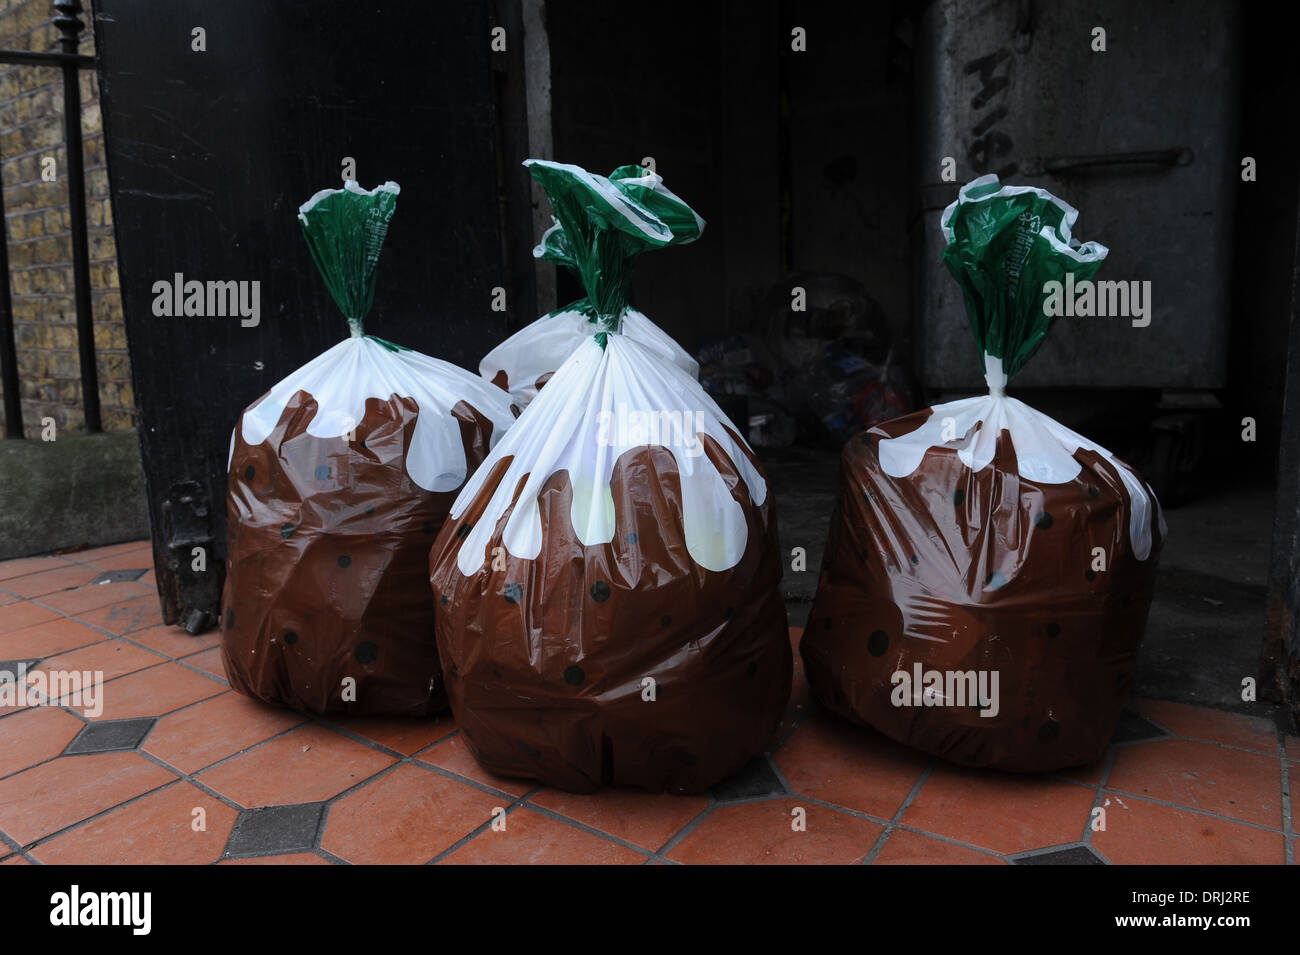 Rubbish bags with a christmas pudding design - Stock Image